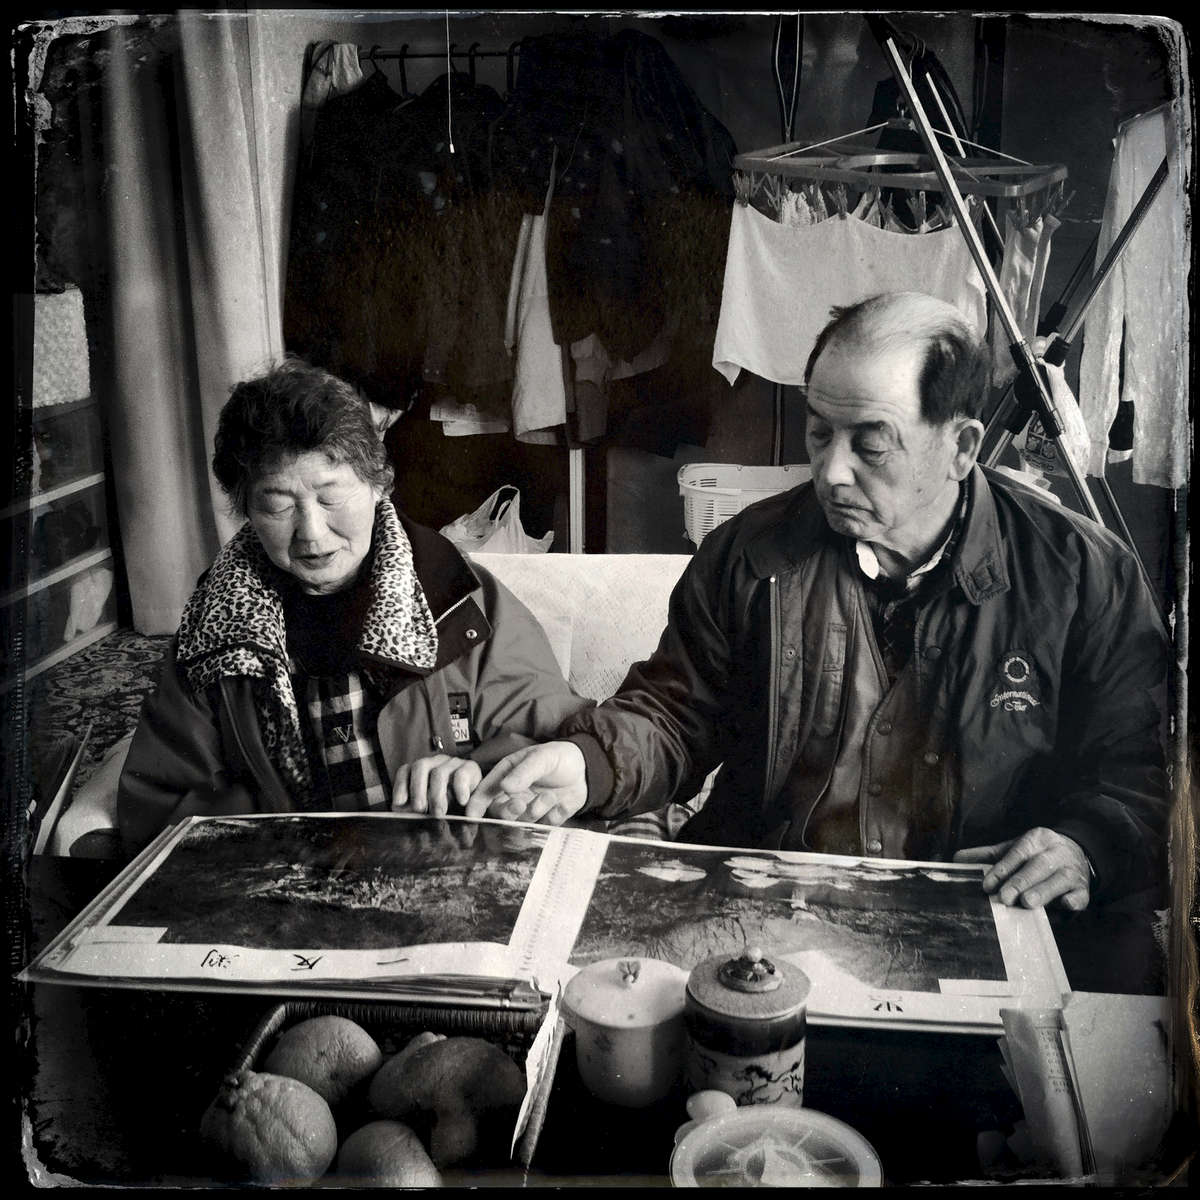 At their temporary housing, Fukushima's evacuees, Koshiro Konno, 76, and his wife Tamano, 75, look at photos of their home village's mountains and rivers that he photographed before the disaster. Now, virtually impossible to return due to hight radiation. Mar/11/2013, Motomiya.